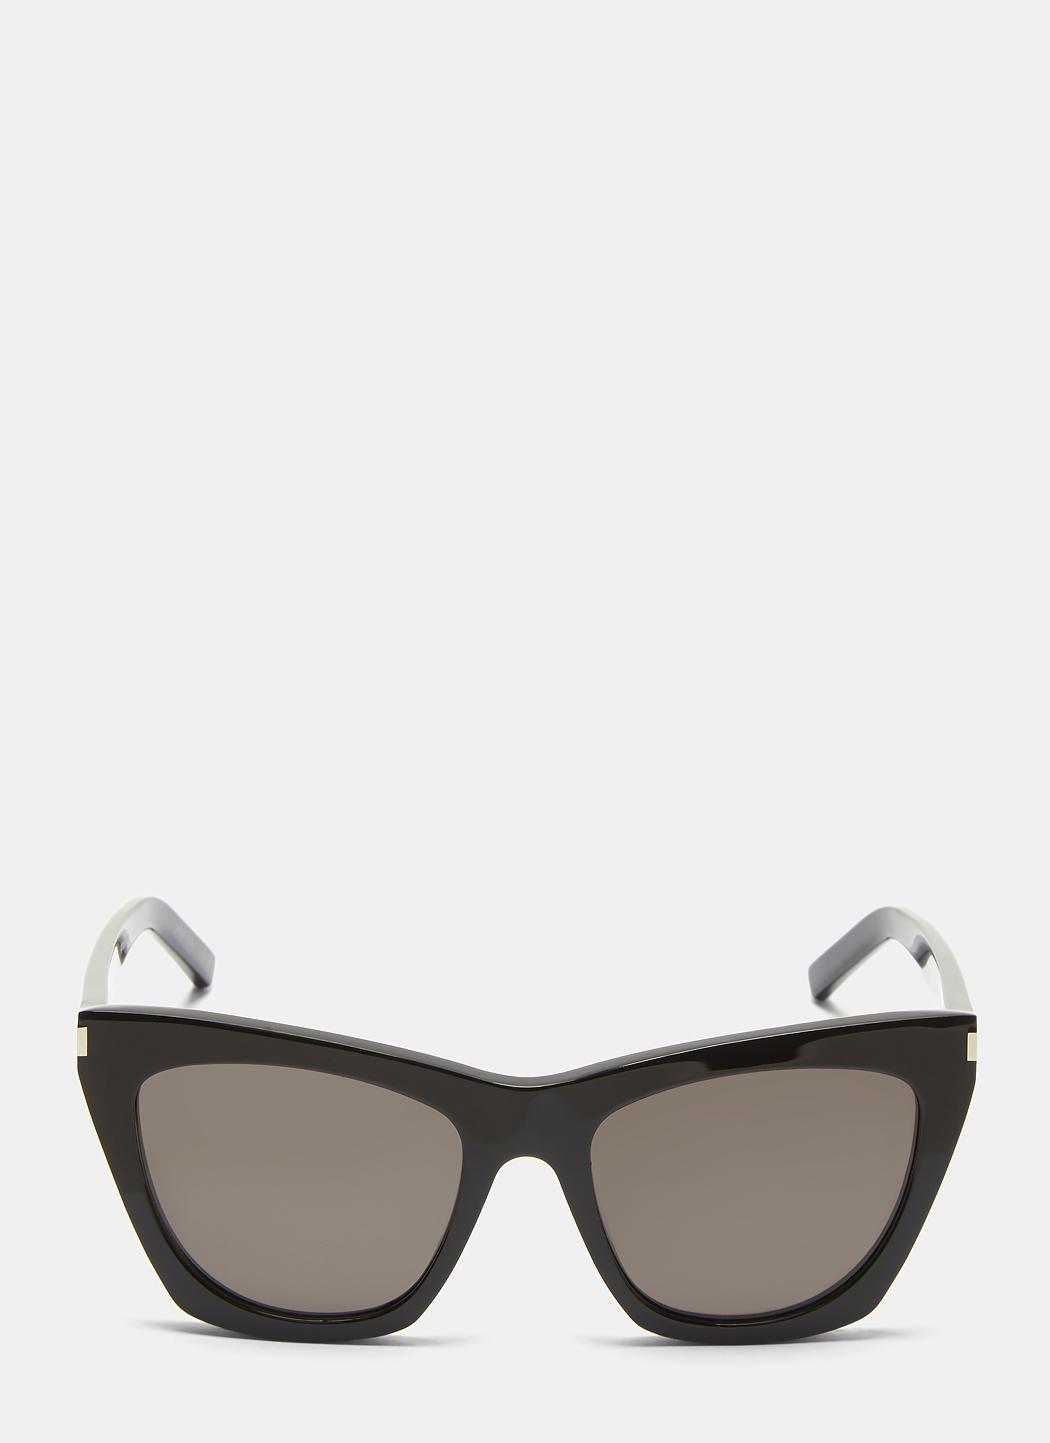 3fd52df30a Saint Laurent New Wave 214 Kate Sunglasses In Black in Black - Lyst